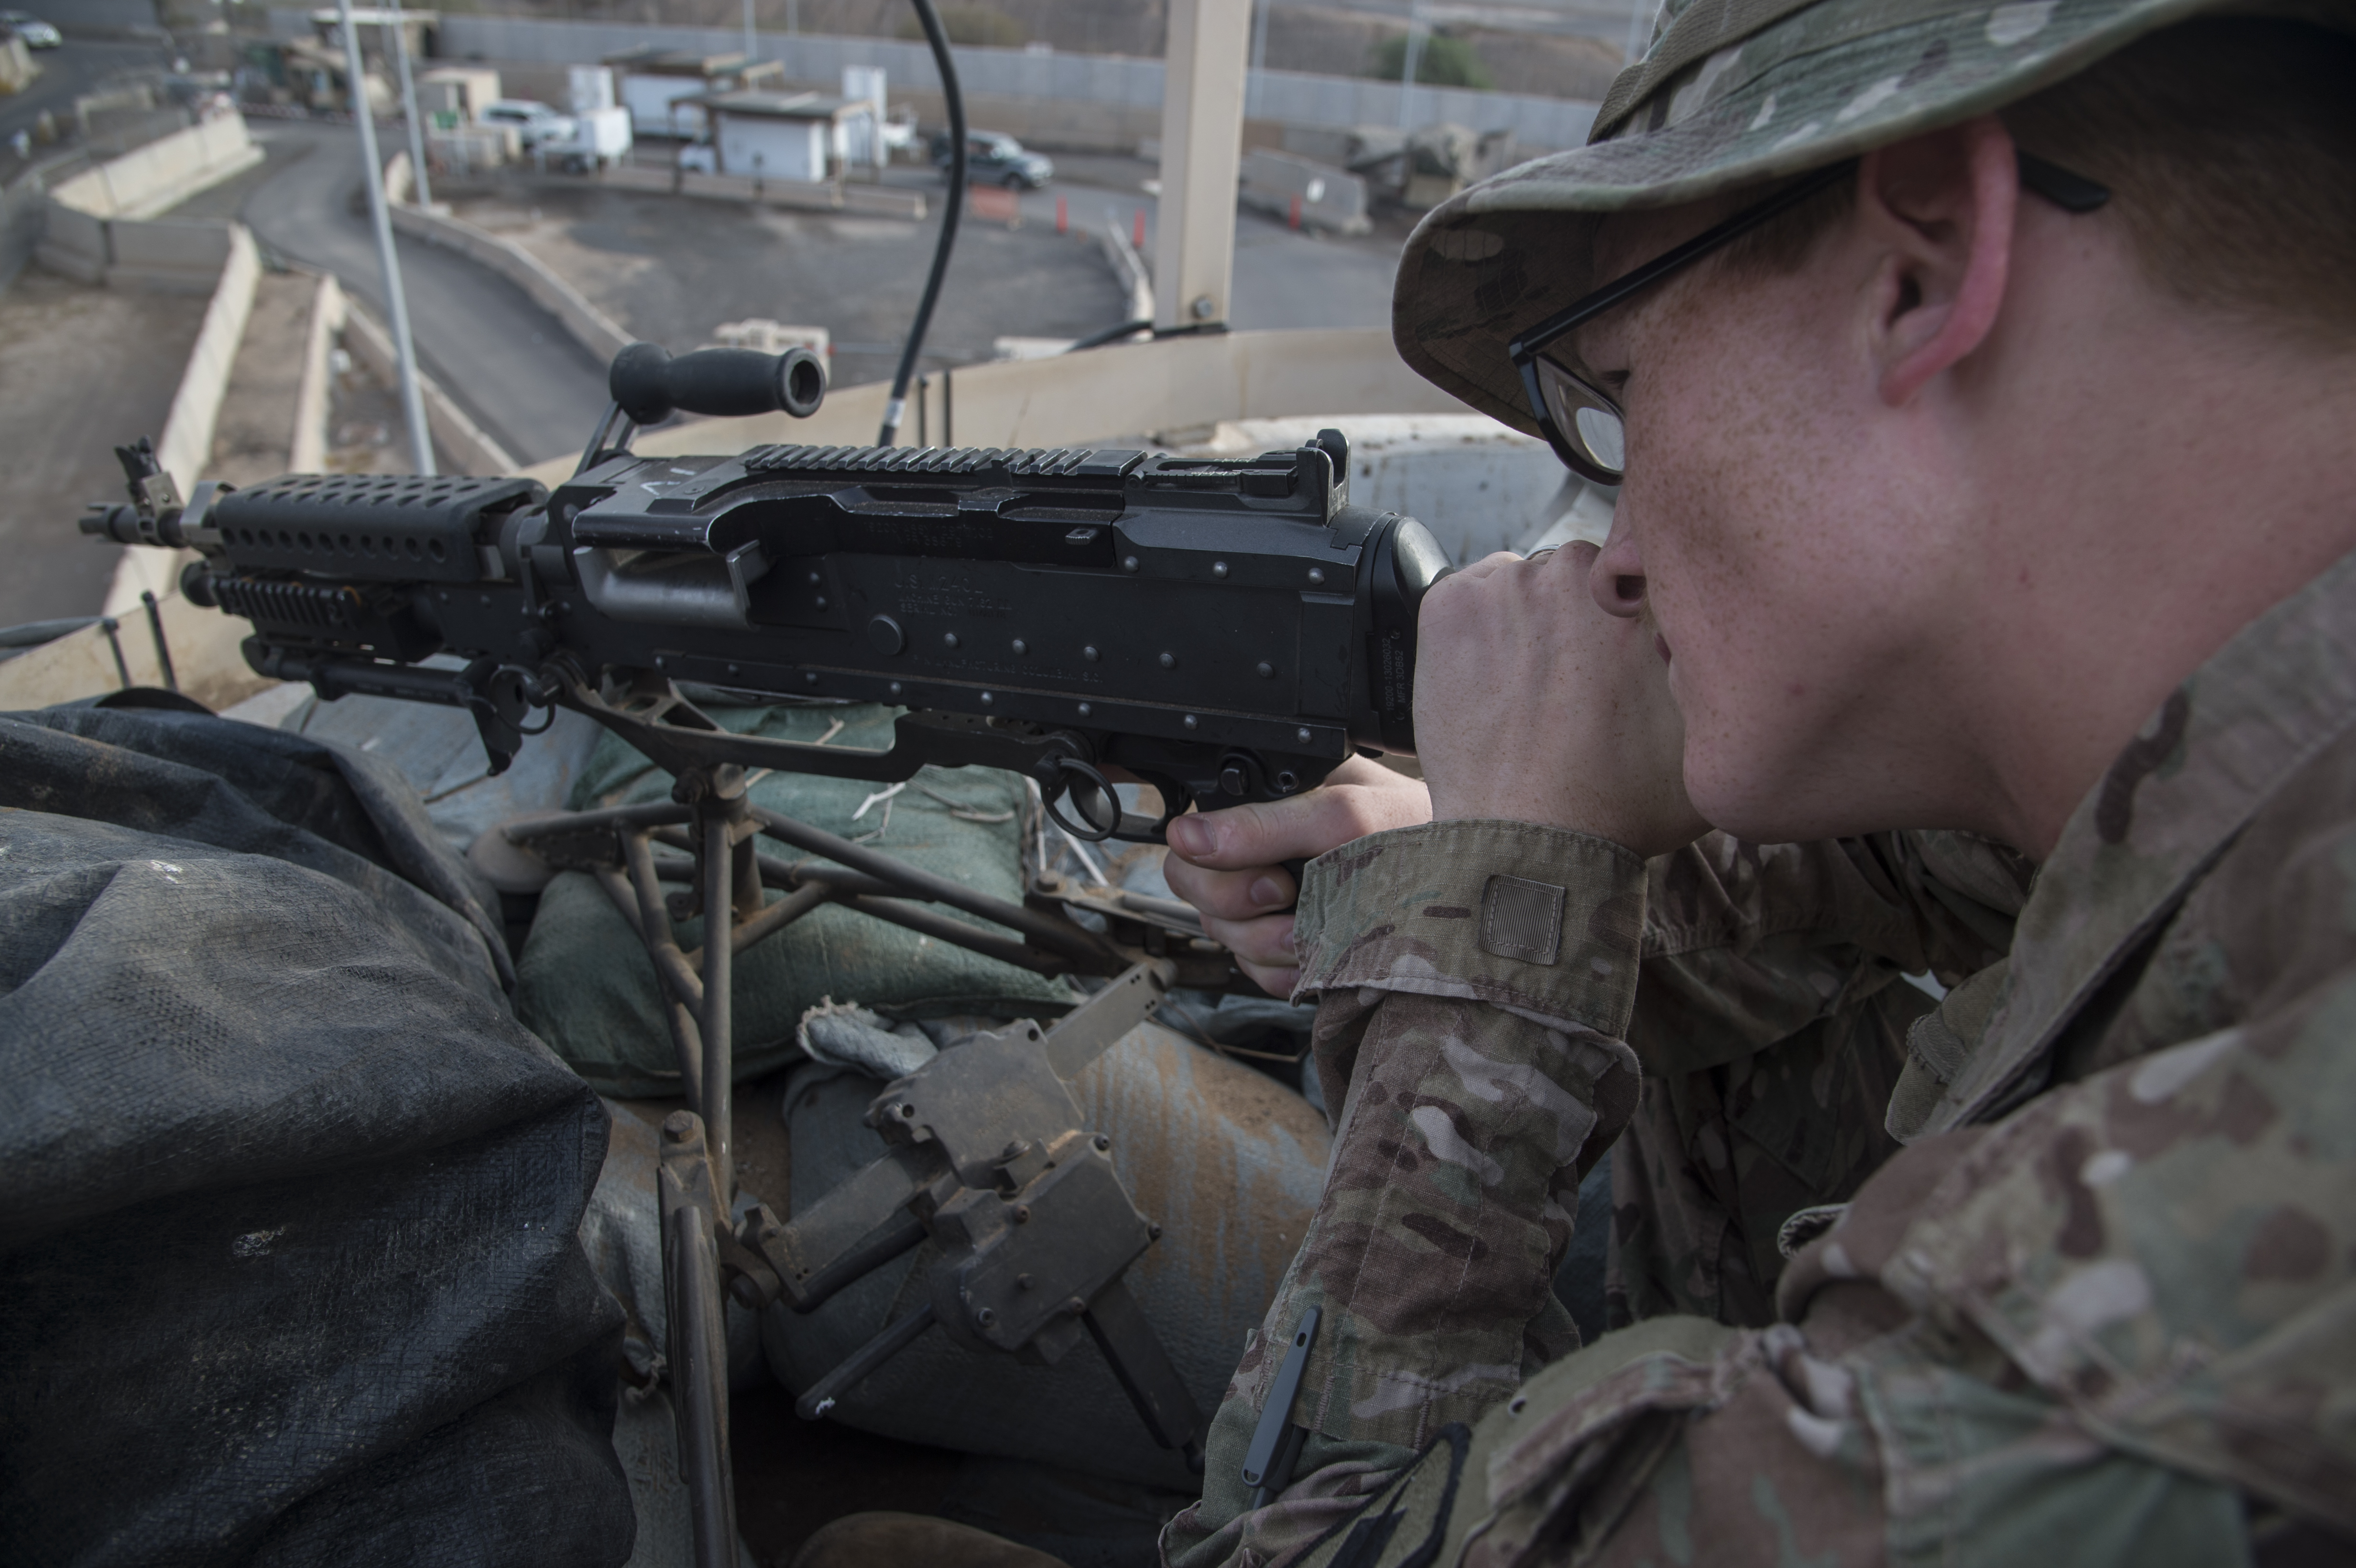 Spc. Britton Boone,1st Battalion, 153rd Infantry Regiment, deployed with the Combined Joint Task Force-Horn of Africa (CJTF-HOA) in Camp Lemonnier, Djibouti, mans the M240 machine gun to secure an entry control point from a base defense tower, June 2, 2017. Soldiers of Alpha company secure the installation 24 hours a day and work with Djiboutian contractors to support efforts in countering regional violent extremist organizations. (U.S. Air National Guard photo by Tech. Sgt. Joe Harwood)